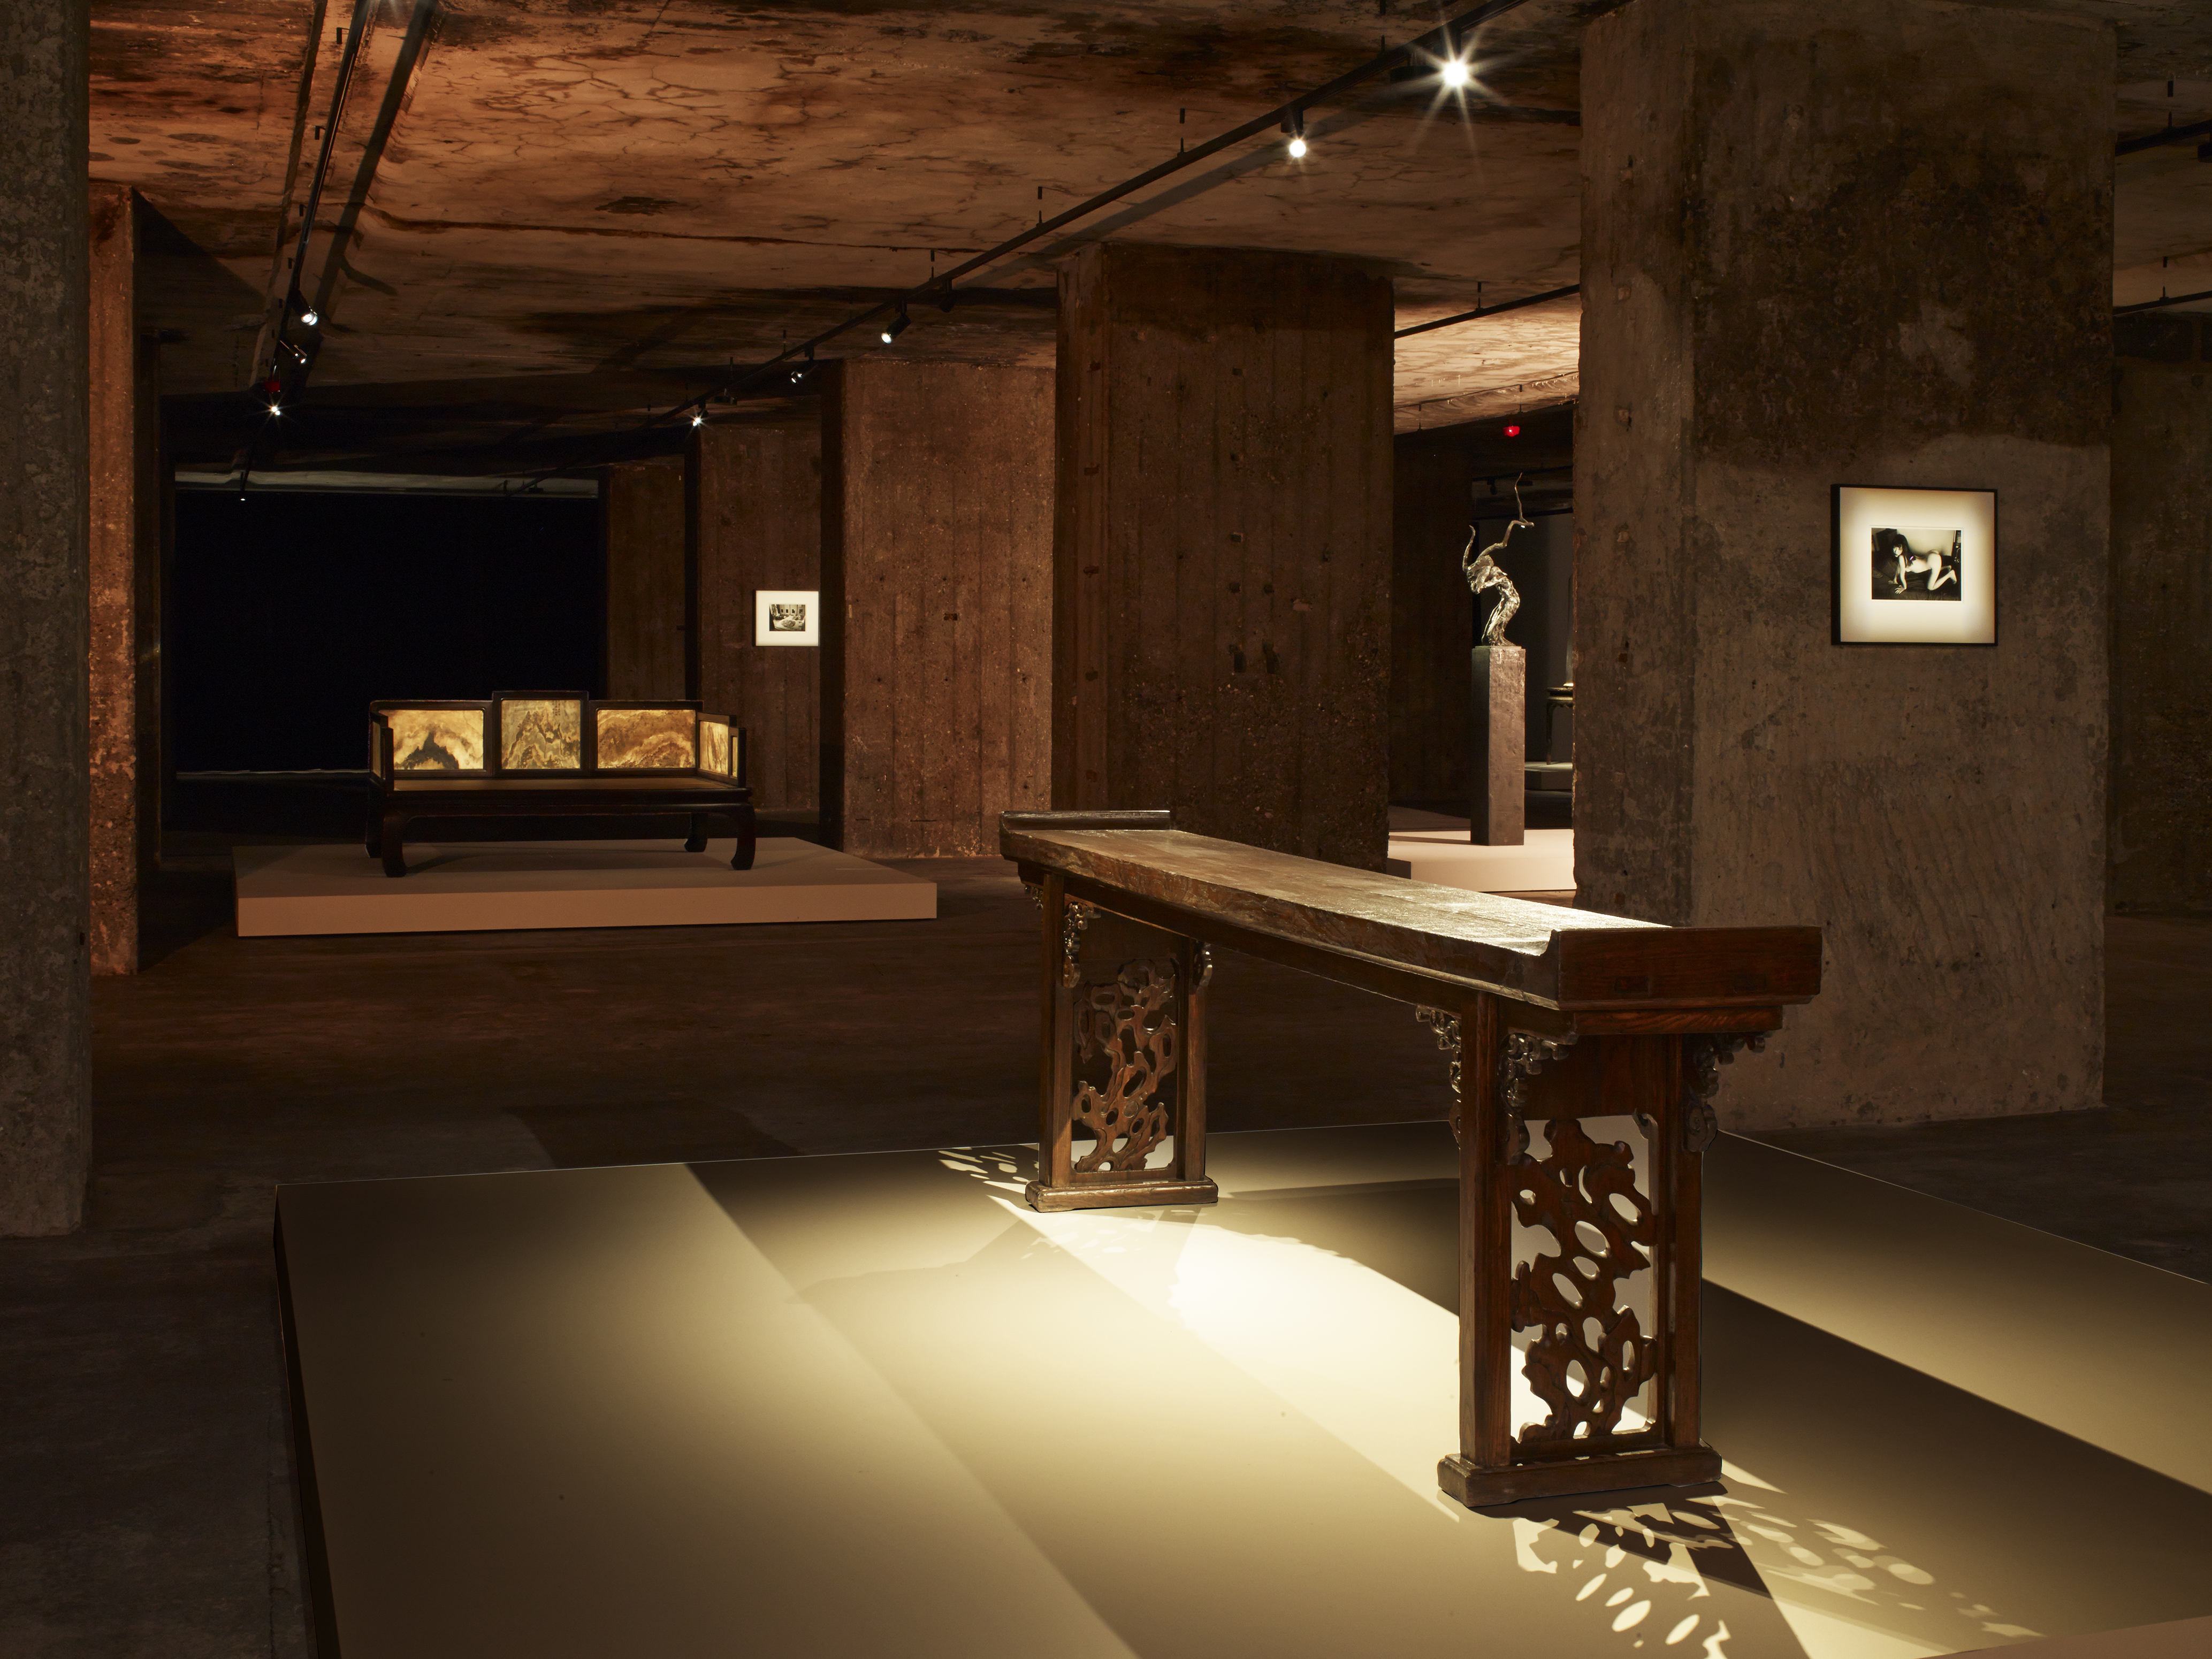 Image: Exhibition view of The Feuerle Collection, Side table with everted ends, Early Qing dynasty, 17th Century. Elm, Approx. 272 cm long. In the the background: Lohan Bed, Qing Dynasty, 17 Jichi wood. Approx. 149 x 204 x 100cm. Zeng Fanzhi, Untitled, 2009. 117 x 61 x 42 cm. bronze, 129.5 x 26 x 26cm (base) and work by Nobuyoshi Araki. Photo: Nic Tenwiggenhorn / VG Bild-Kunst, Bonn. © The Feuerle Collection.